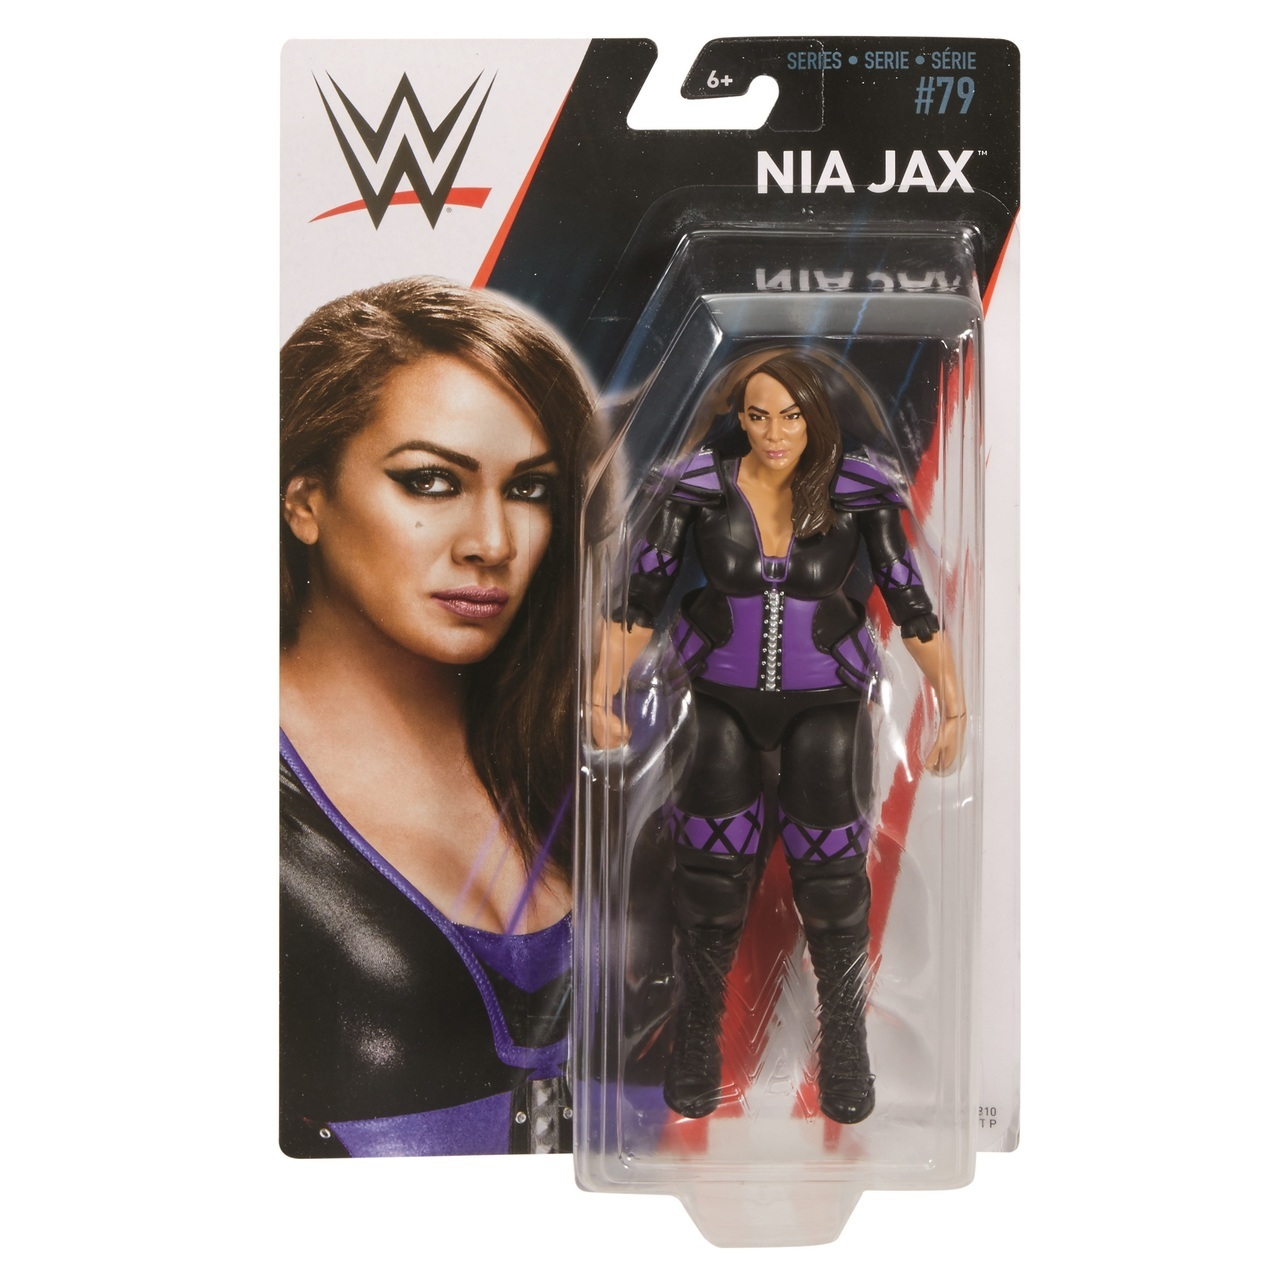 Nia Jax WWE Mattel Basic Series 79 Action Figure